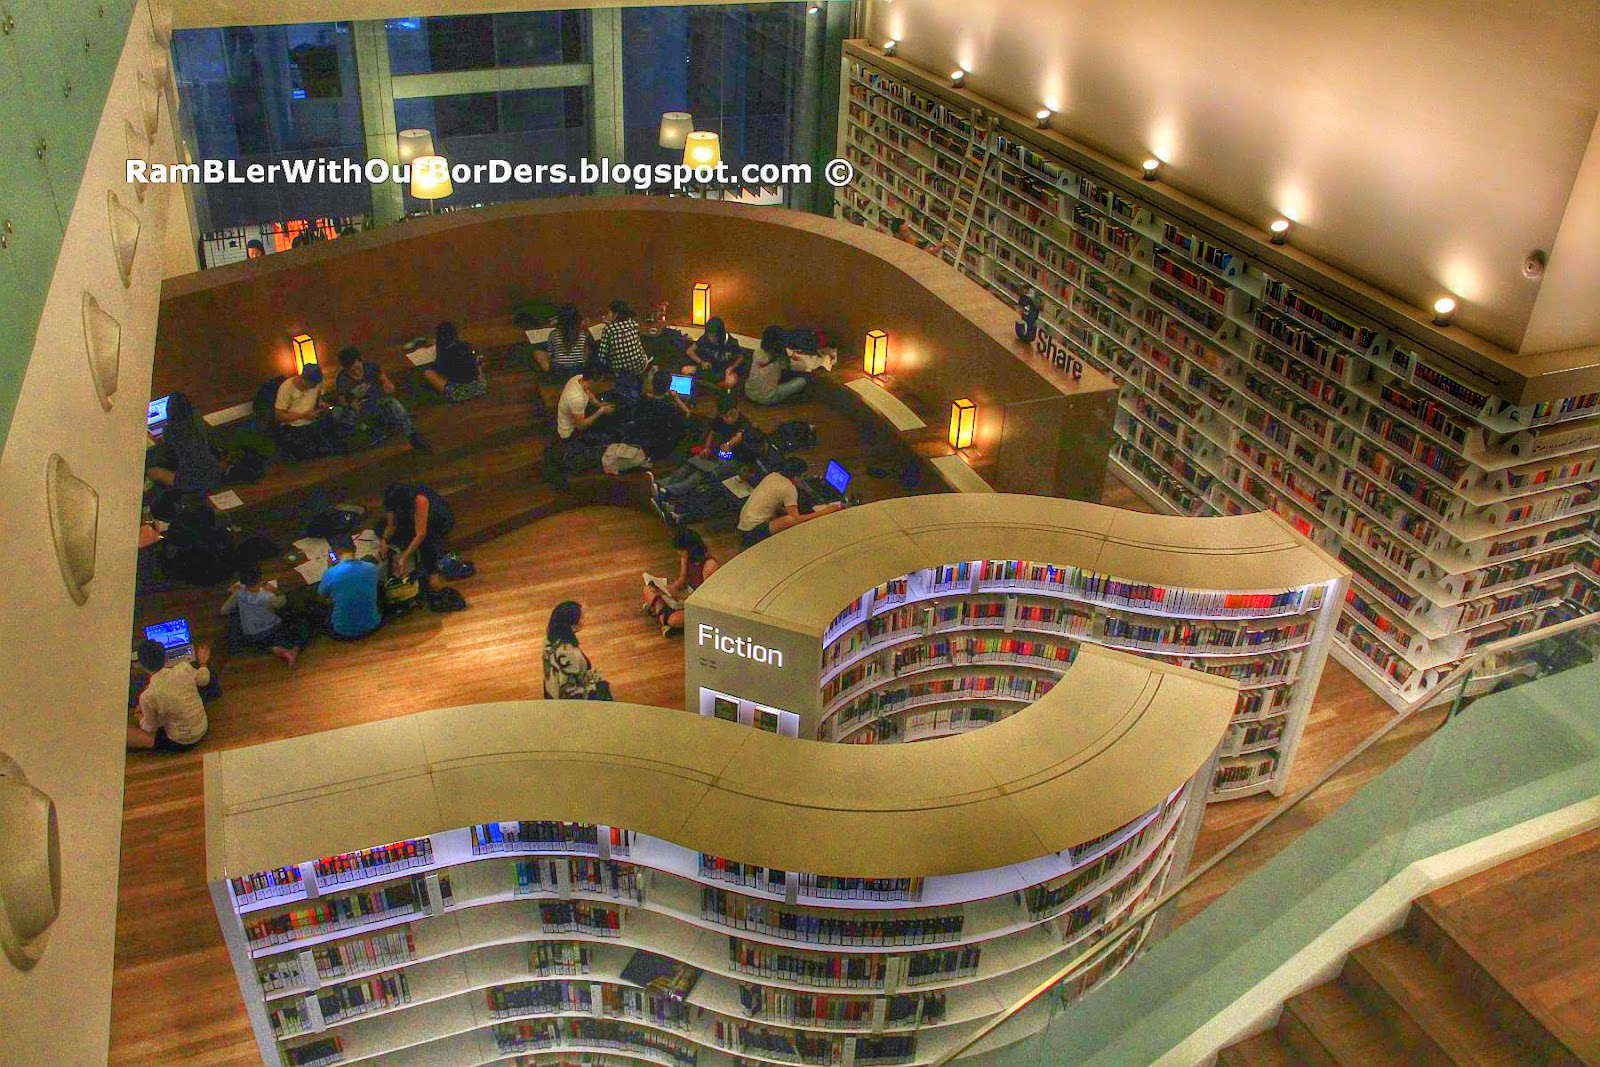 Library@Orchard, Orchard Gateway, Singapore